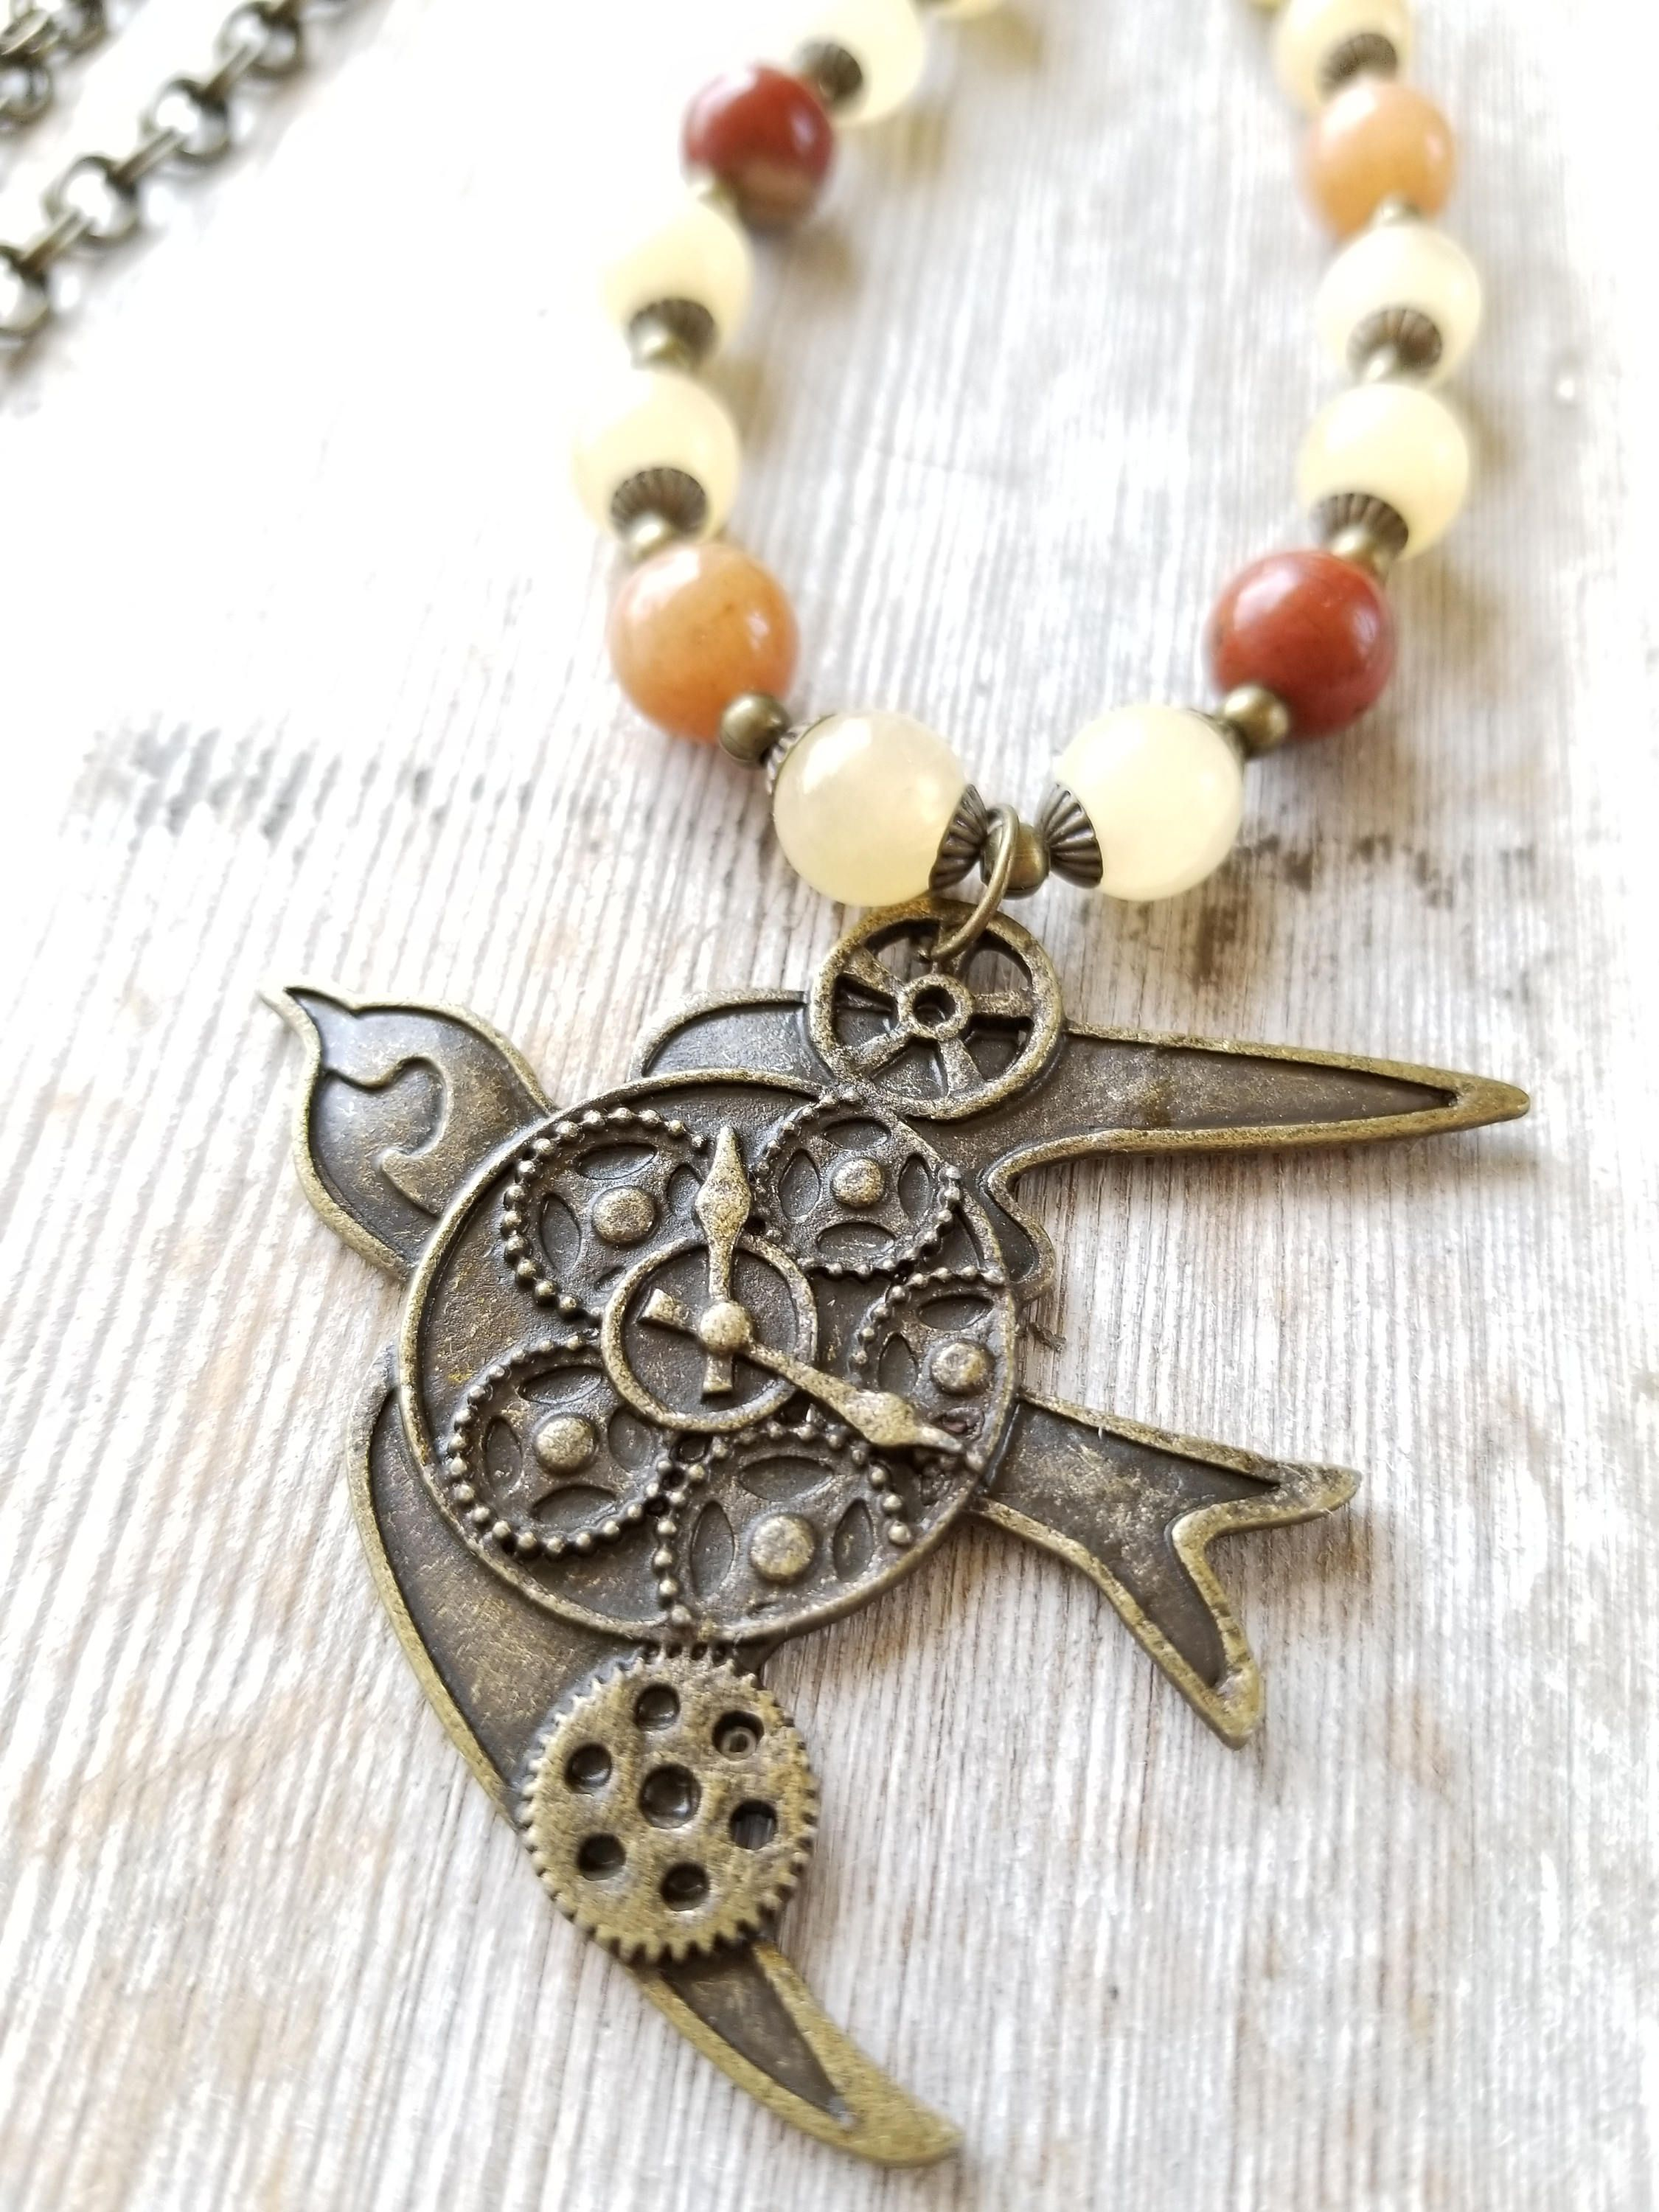 shop emi recycled soaring eve pendant jewelry bird brass bullet